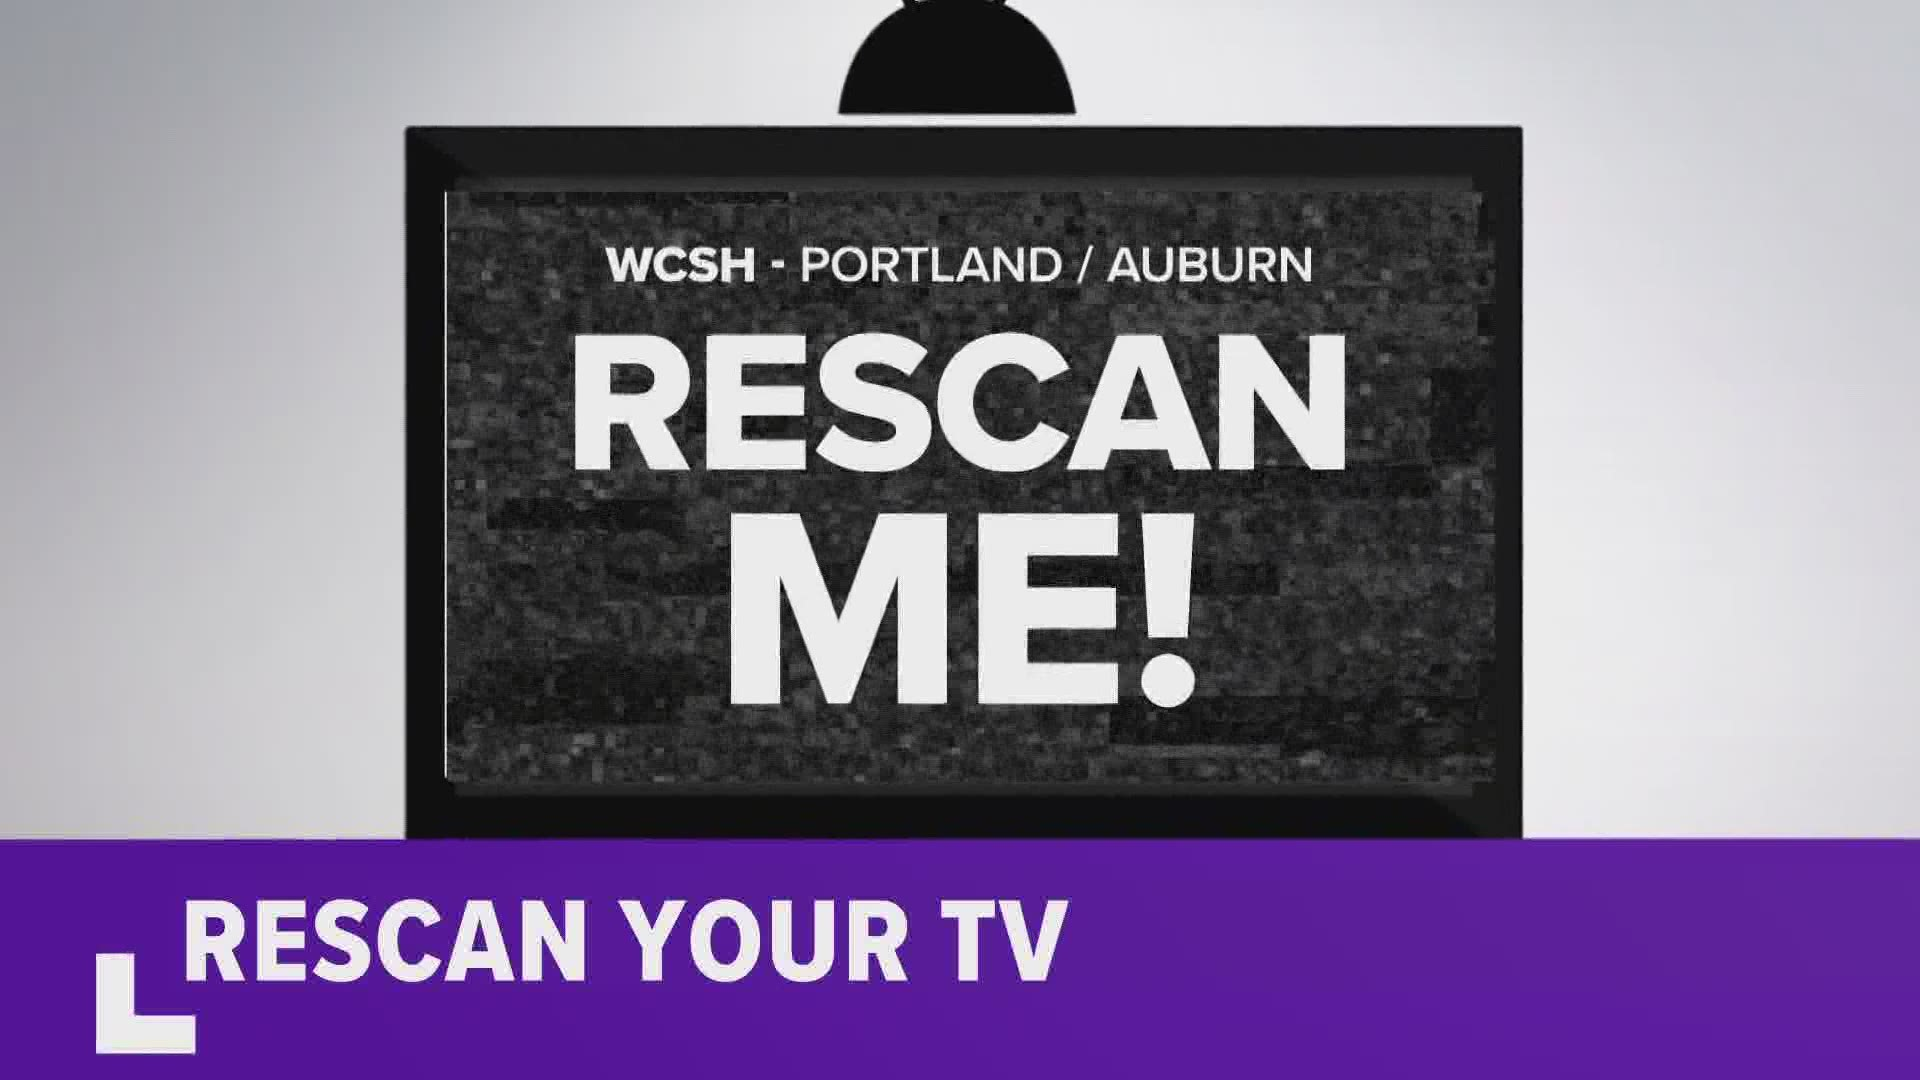 We Ve Activated Our New And Improved Maine Tv Antenna Newscentermaine Com